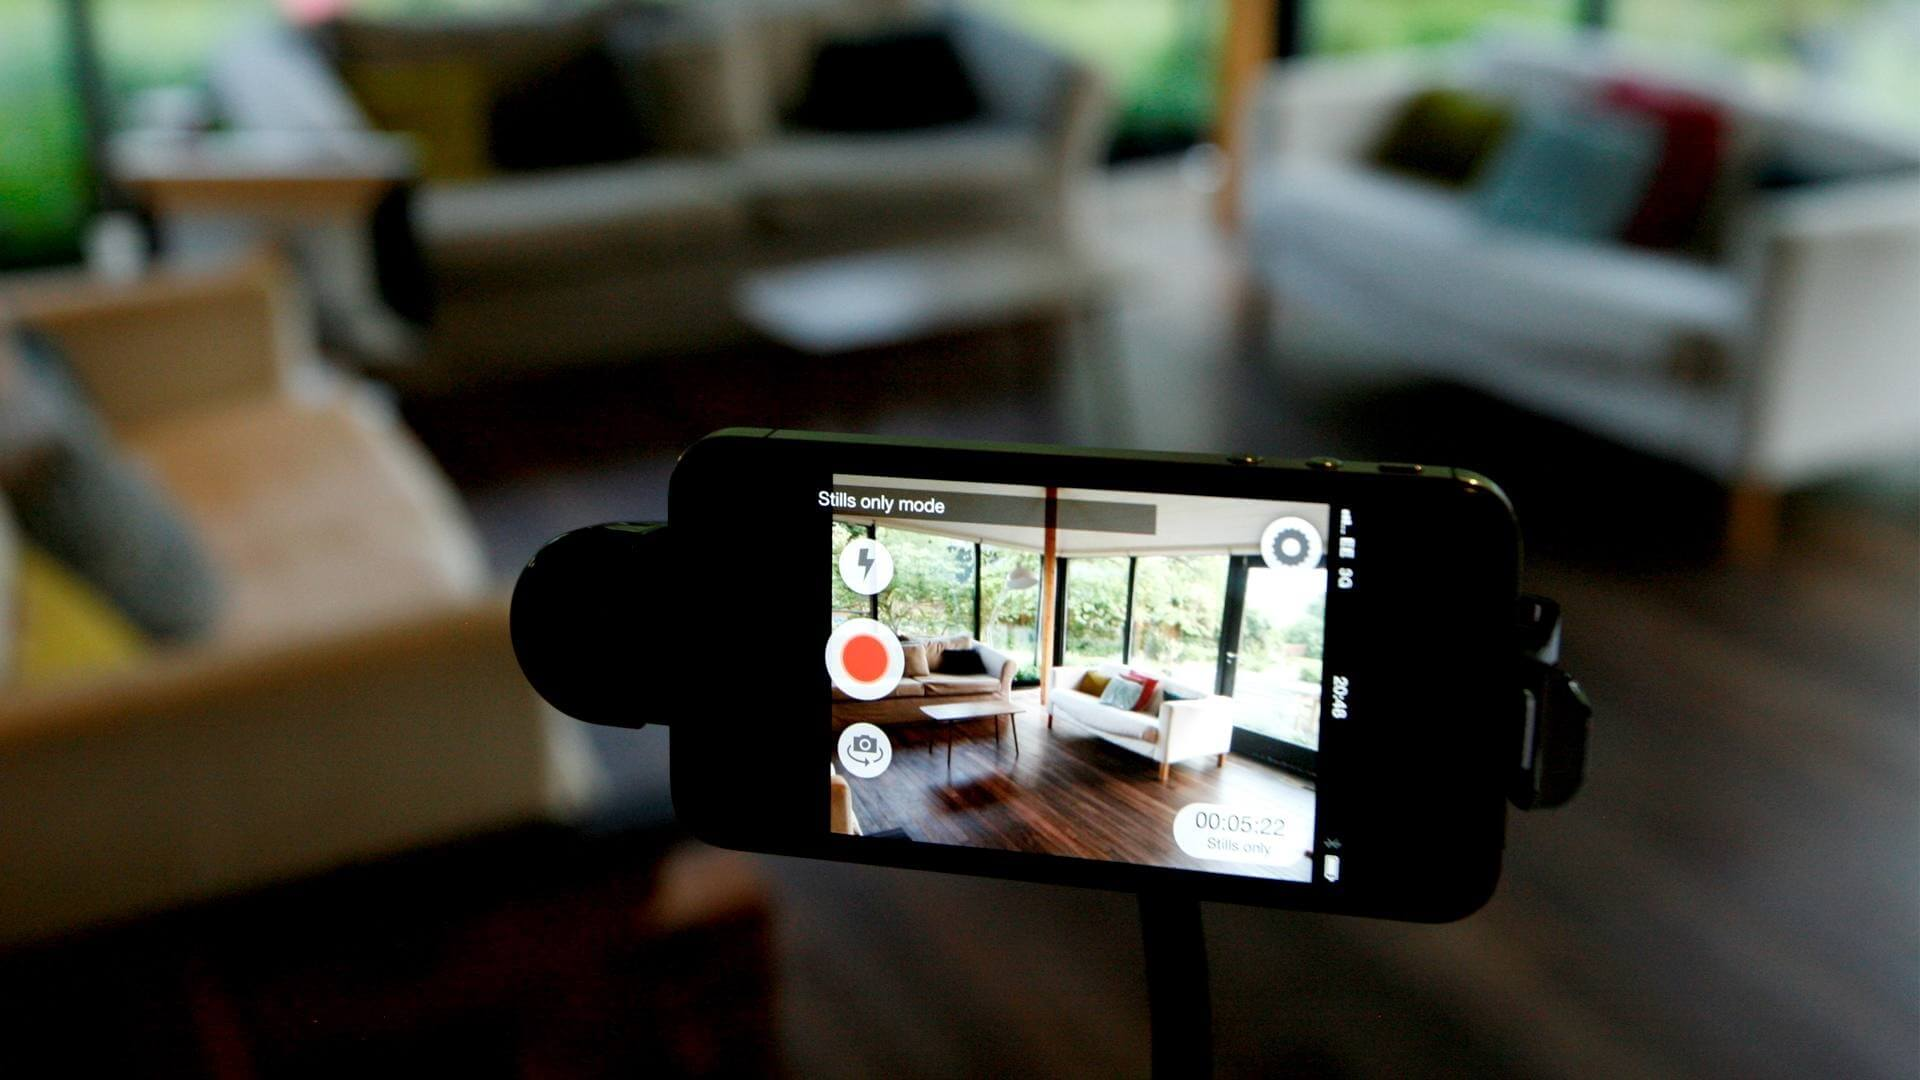 Best Security Camera Apps for iPhone